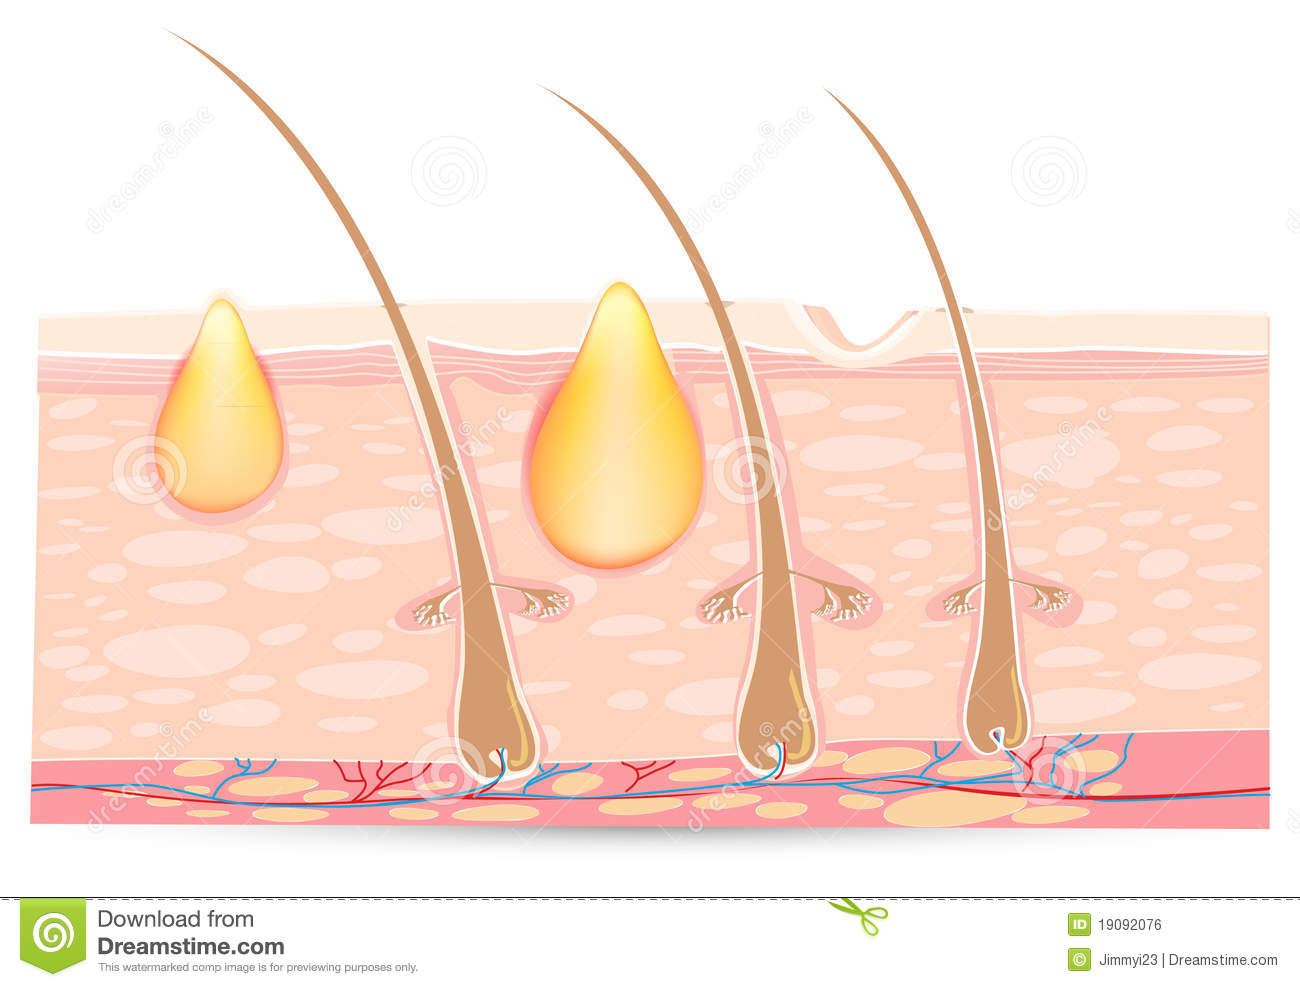 what causes acne diagram starter relay wiring of epidermoid cyst seborrheic keratosis